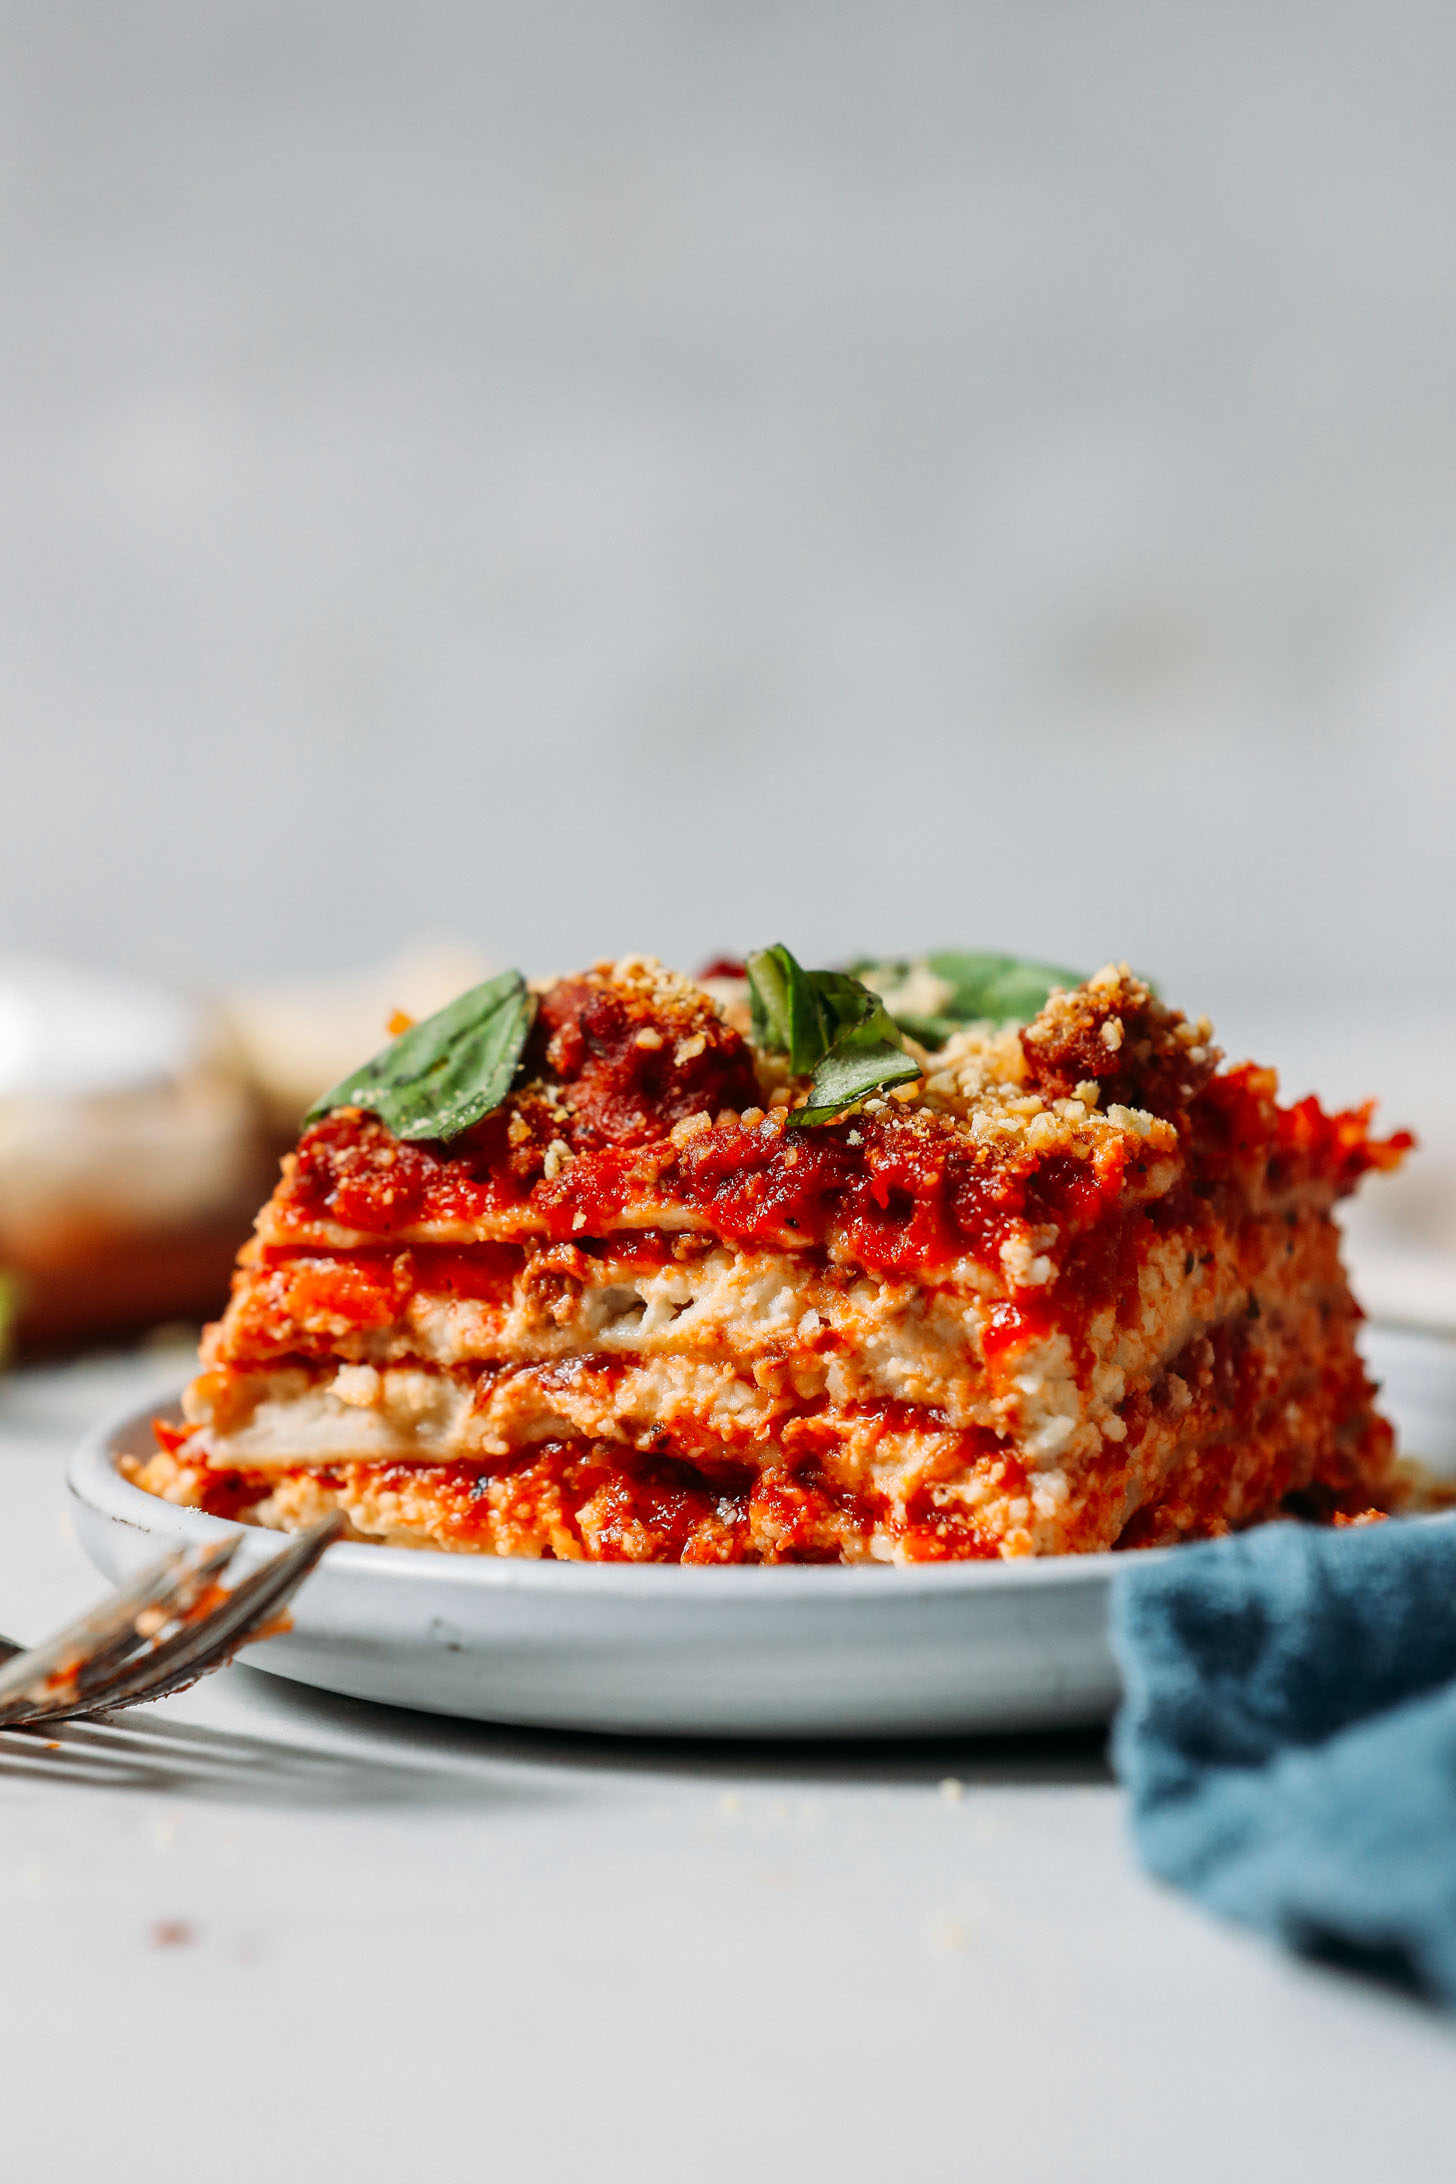 Side view of a slice of Gluten-Free Lasagna